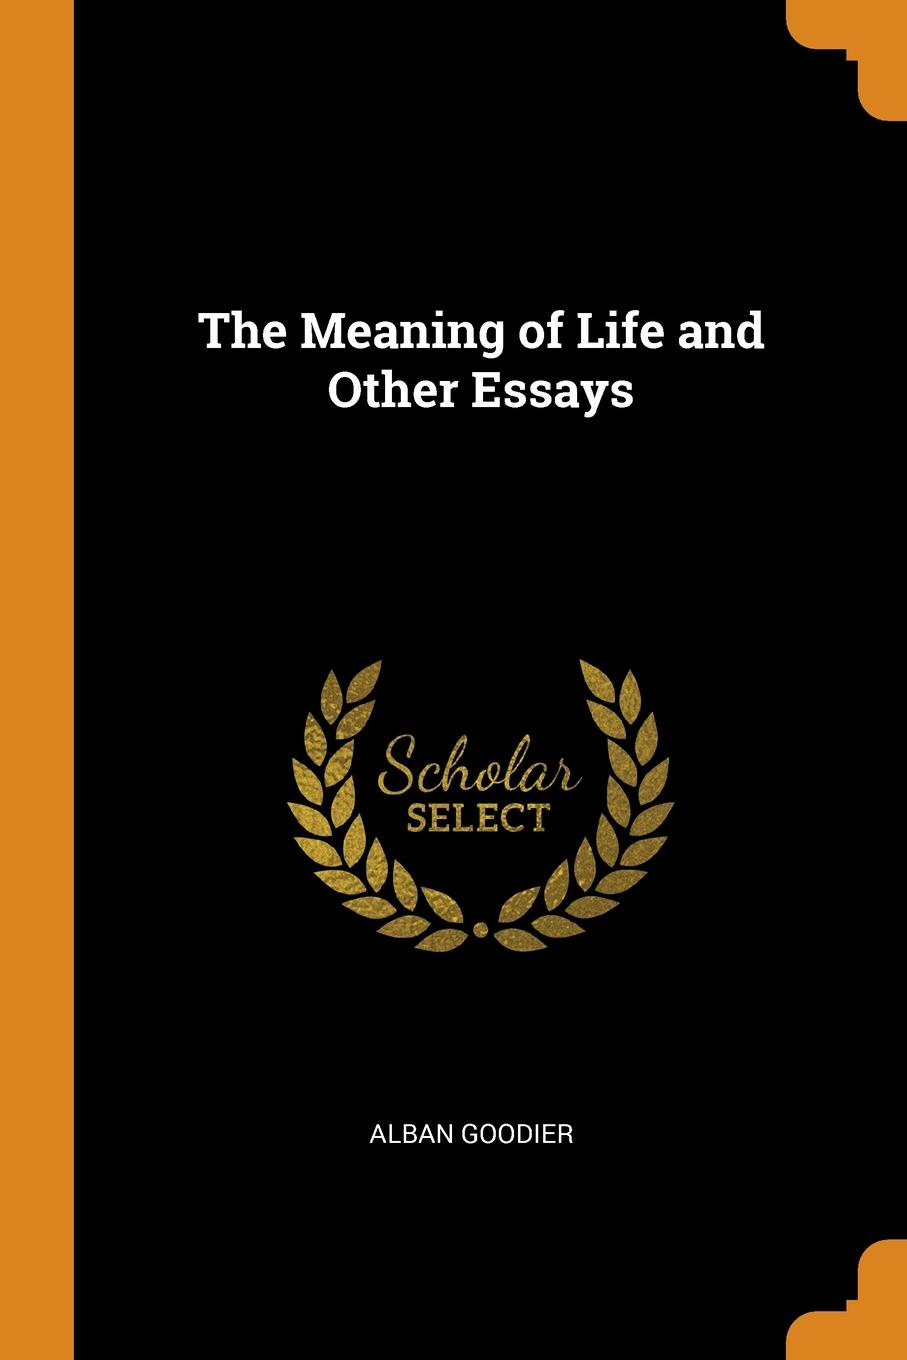 Alban Goodier. The Meaning of Life and Other Essays